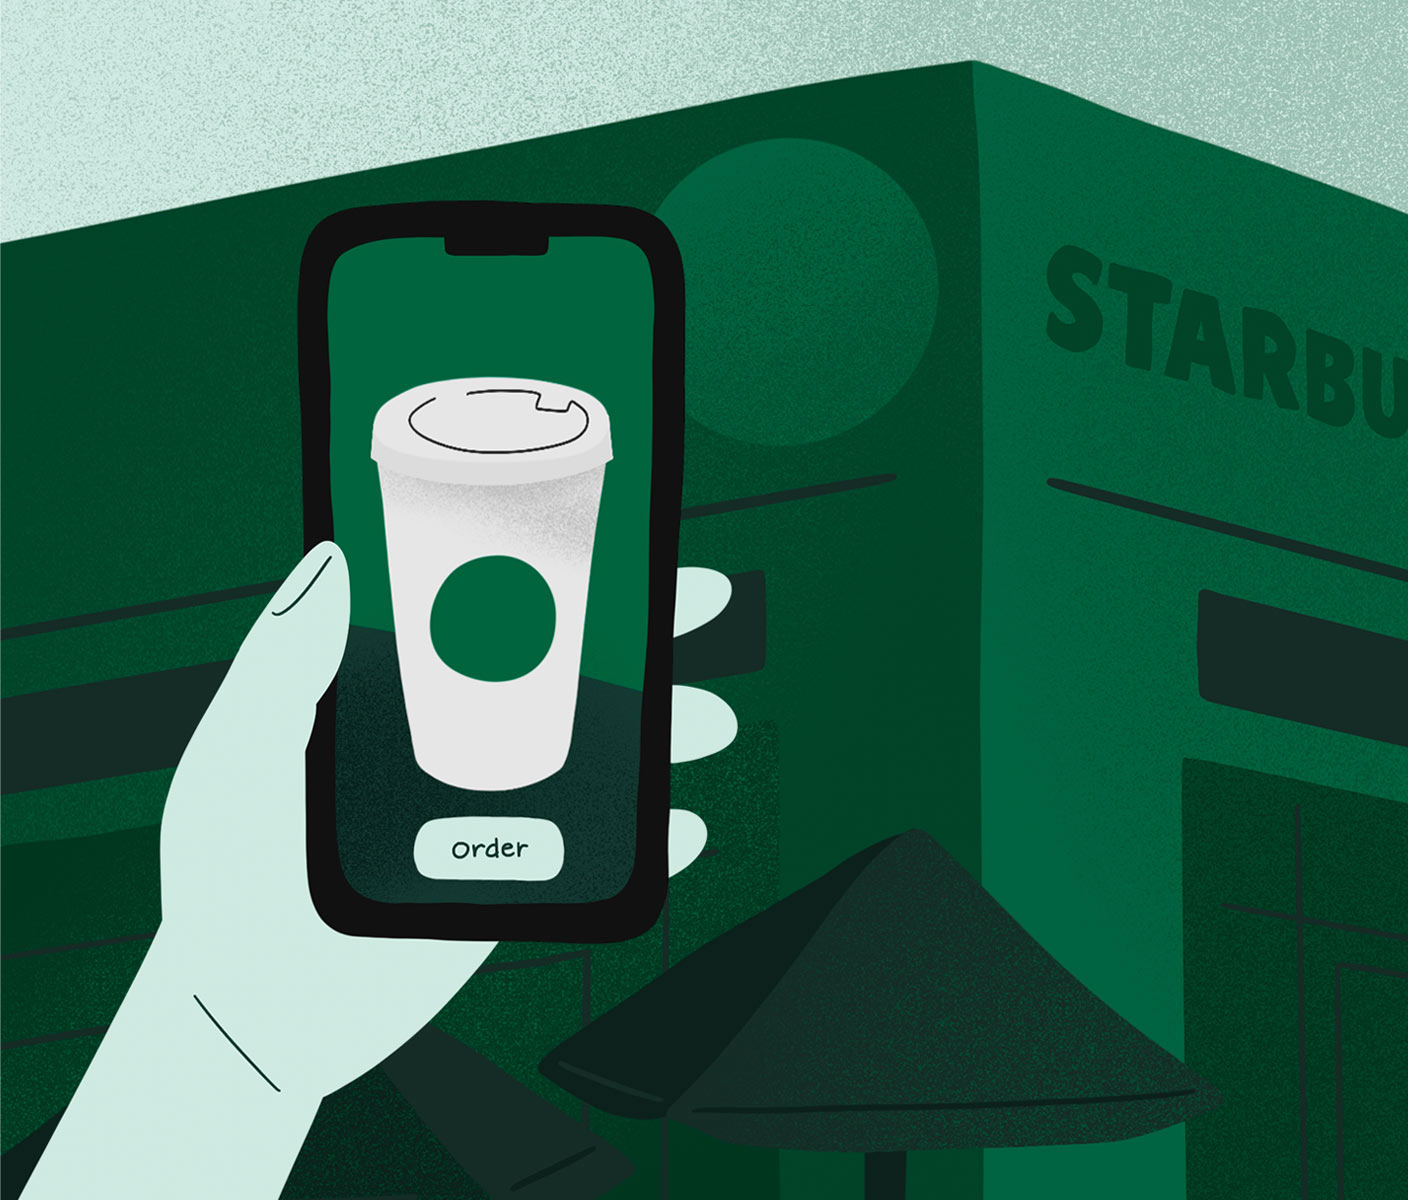 Illustrated hand holding a phone with the app open in front of a Starbucks store.